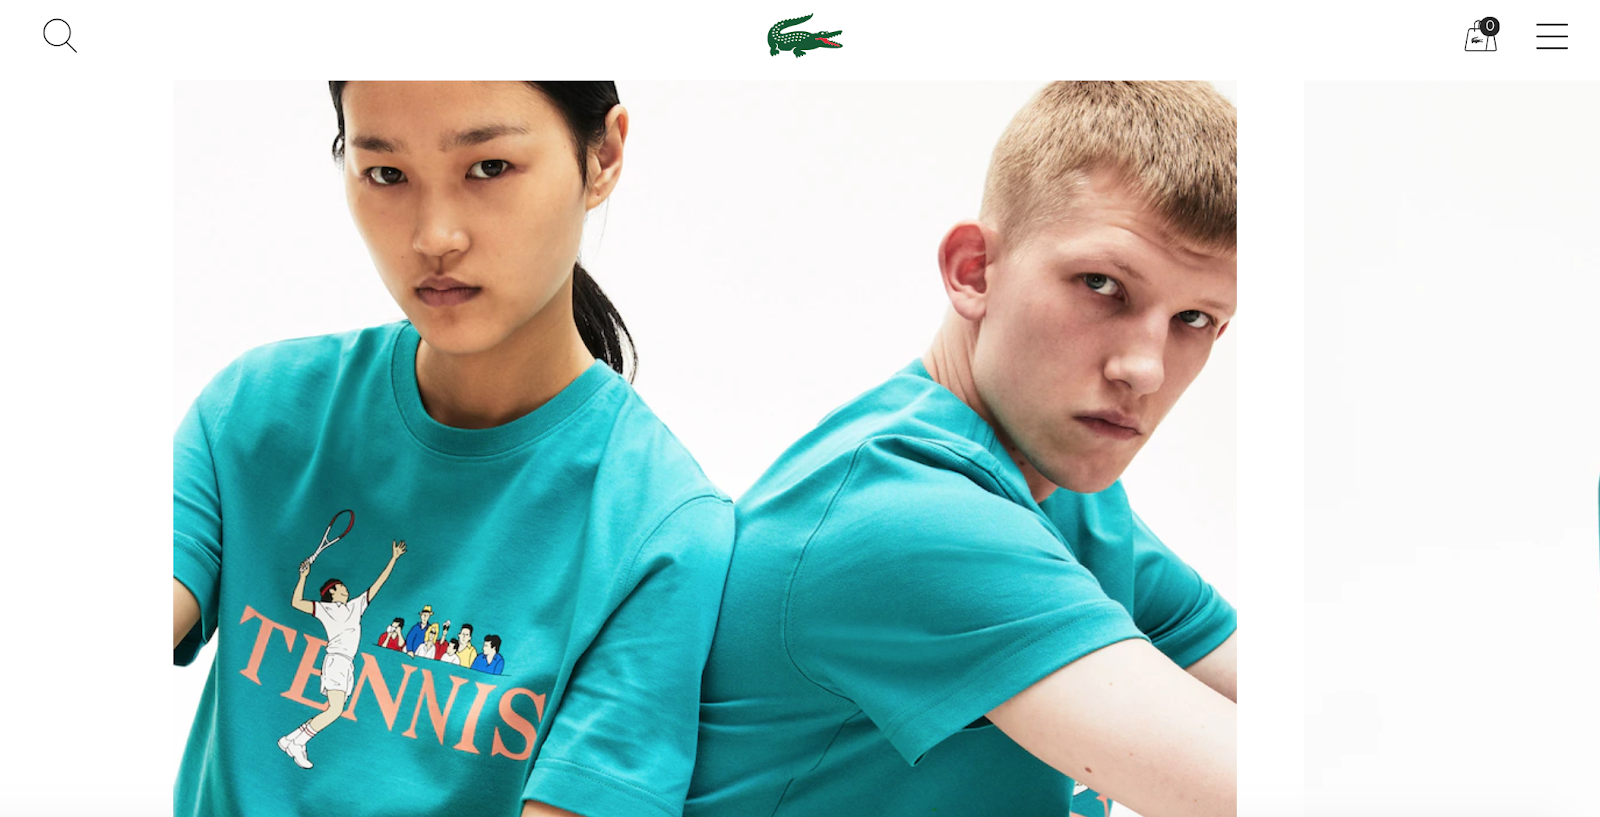 best product detail page examples lacoste